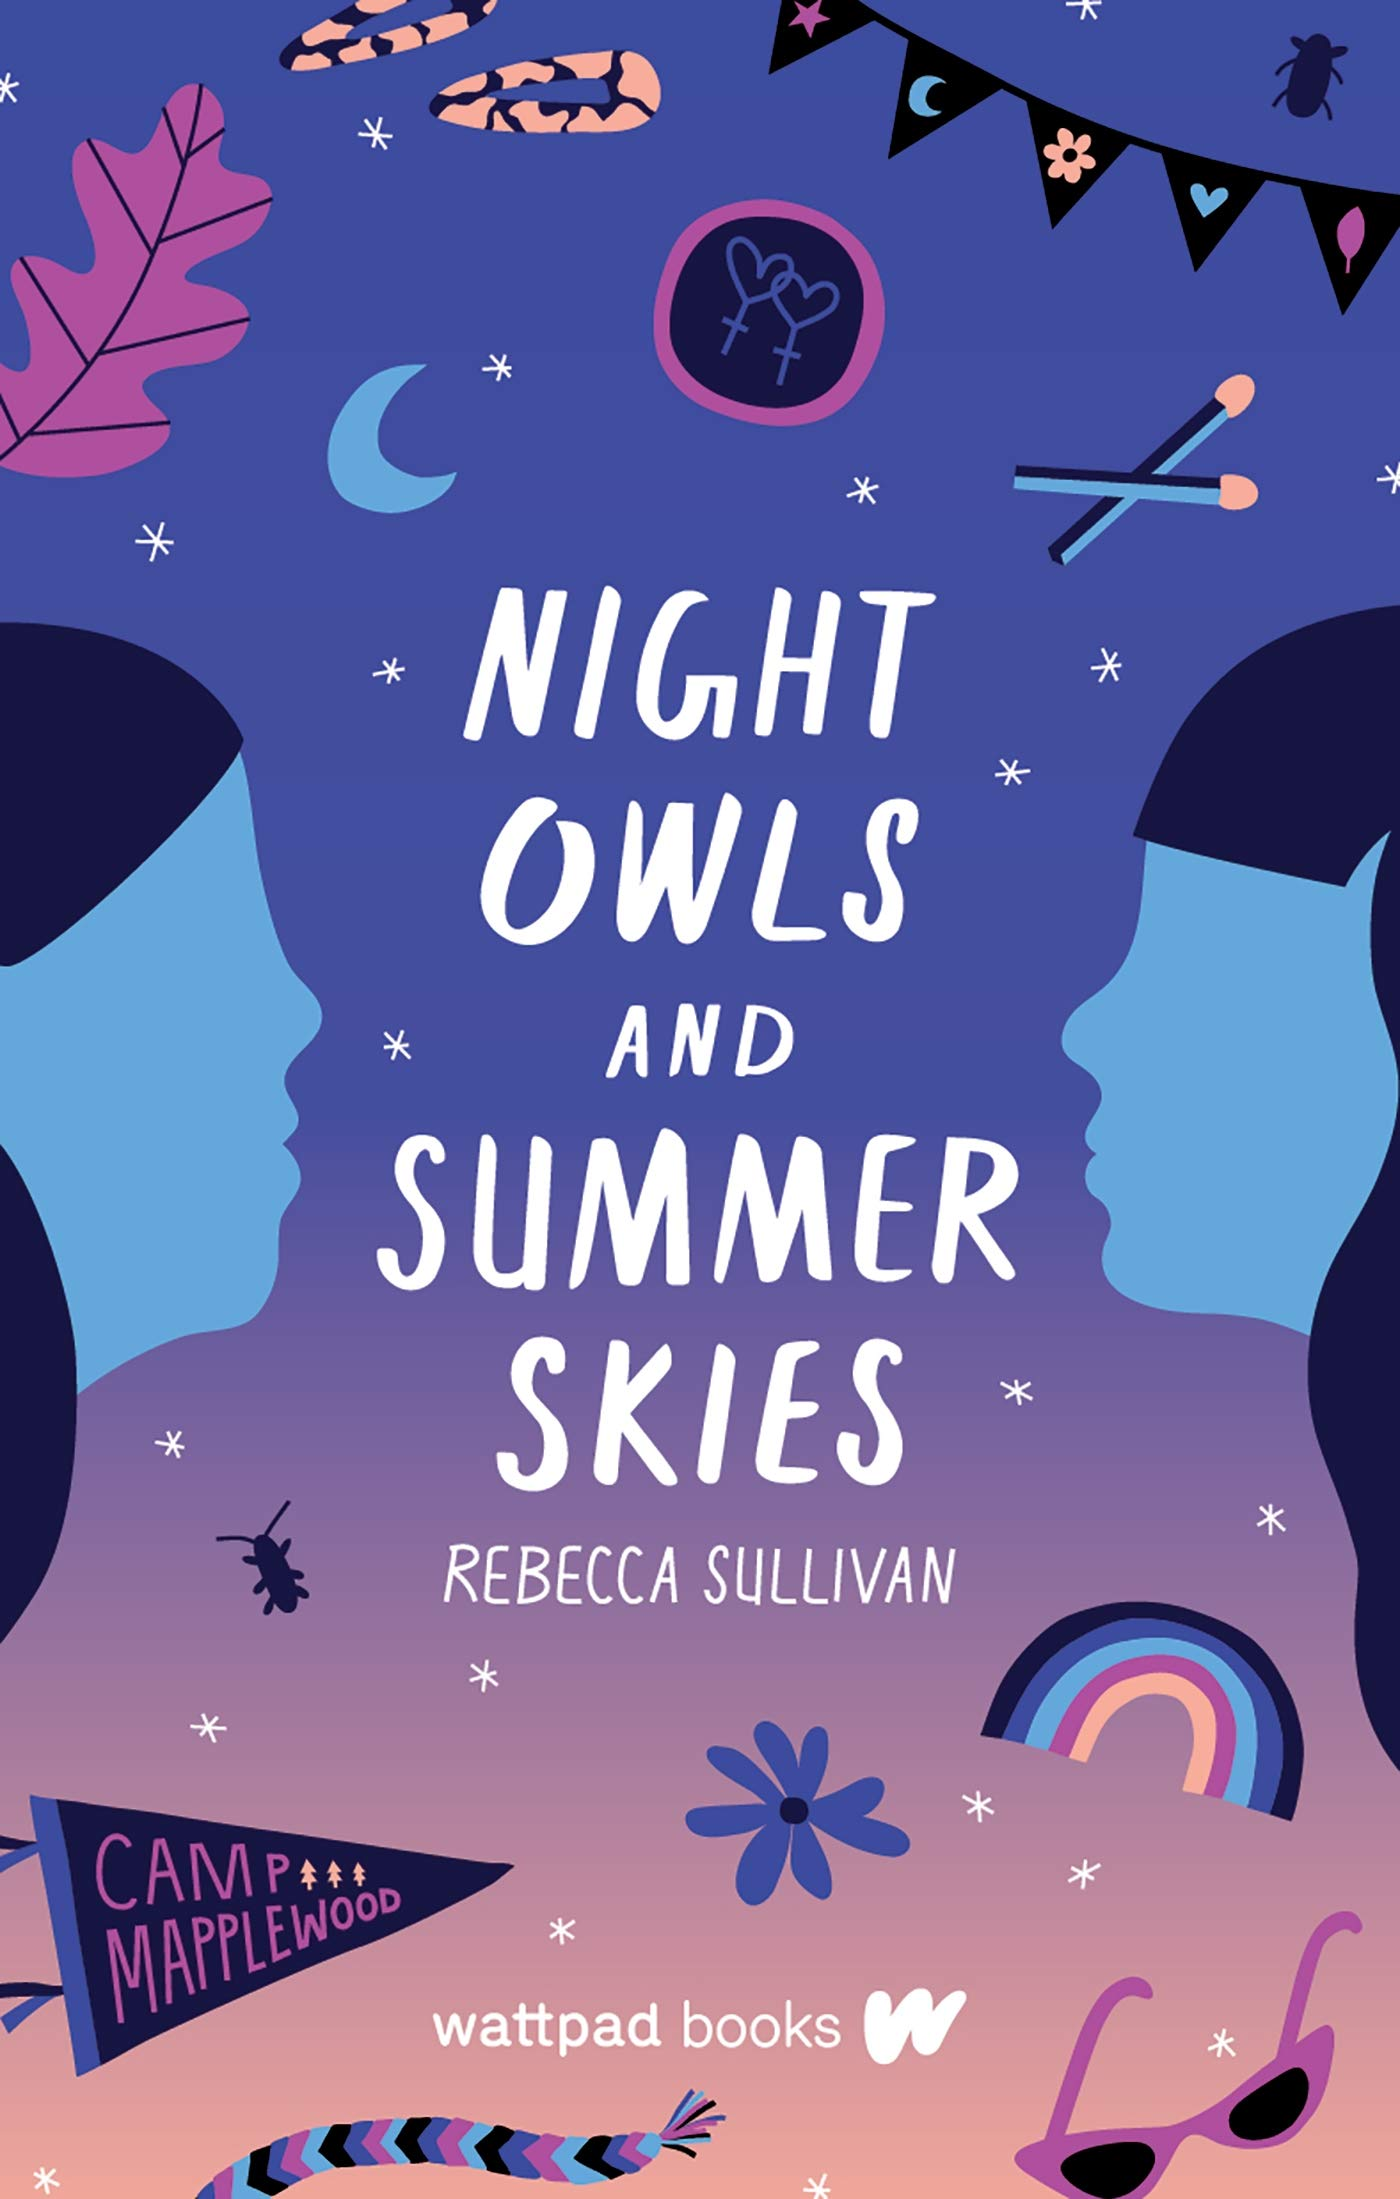 Amazon.com: Night Owls and Summer Skies (9781989365250): Sullivan ...